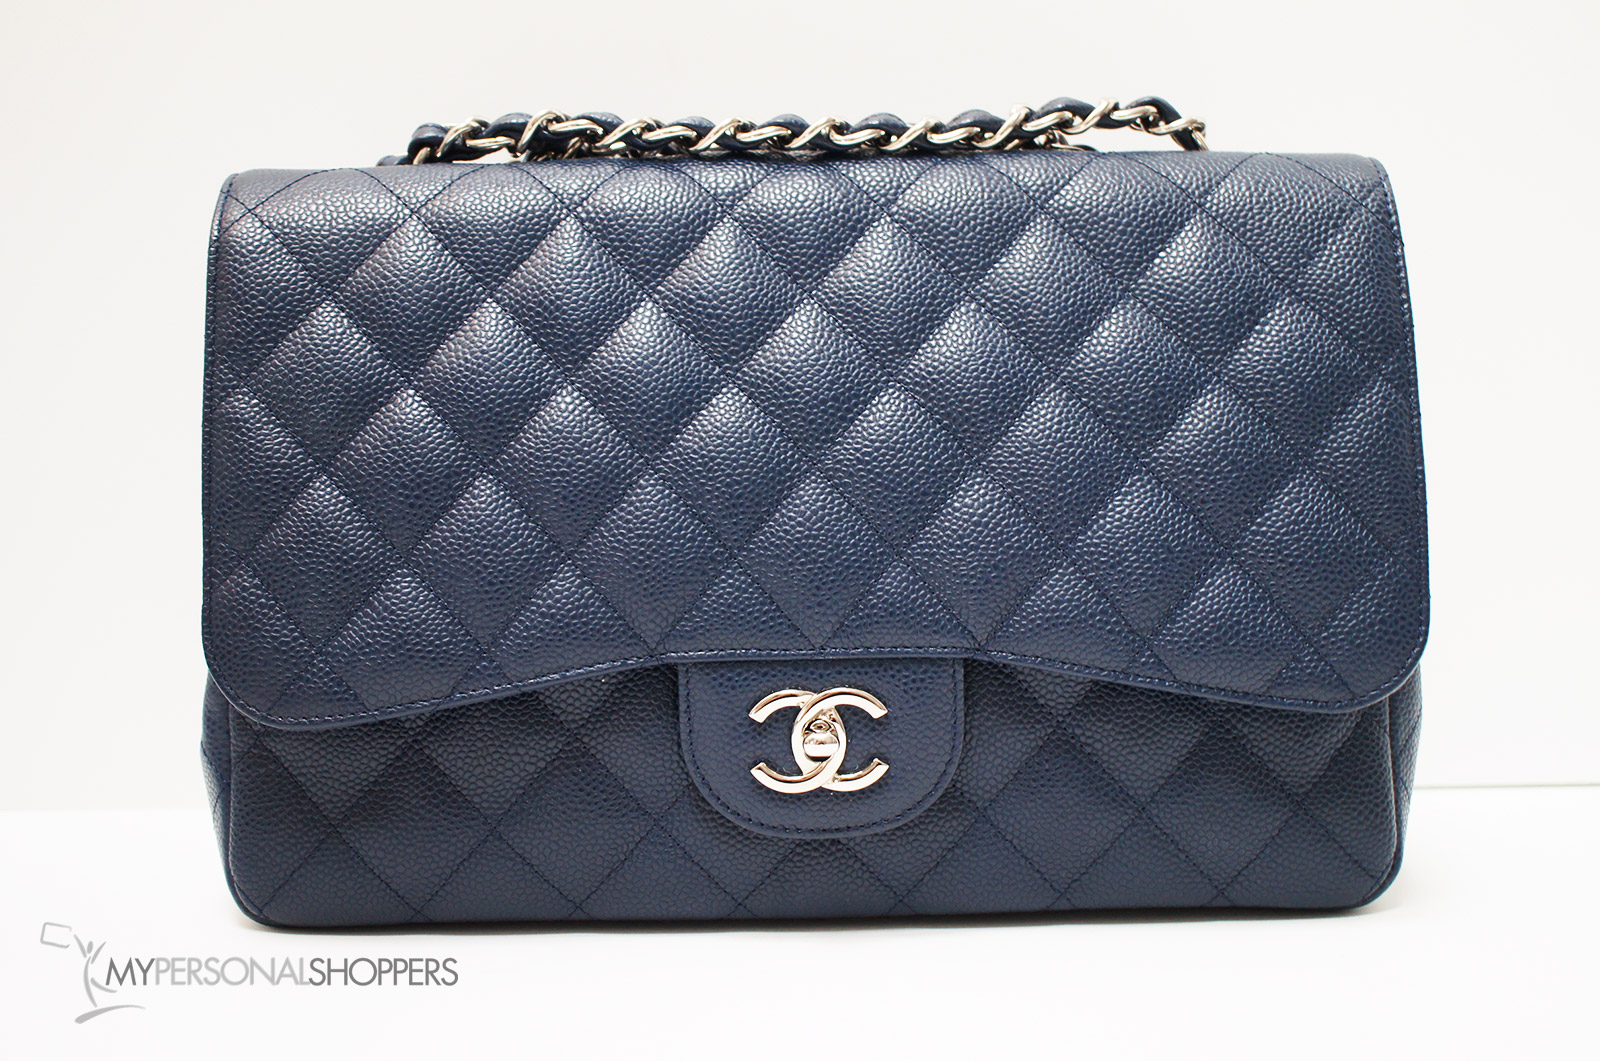 942121c4da Chanel Classic Jumbo Single Flap Navy Blue Caviar Leather Silver ...